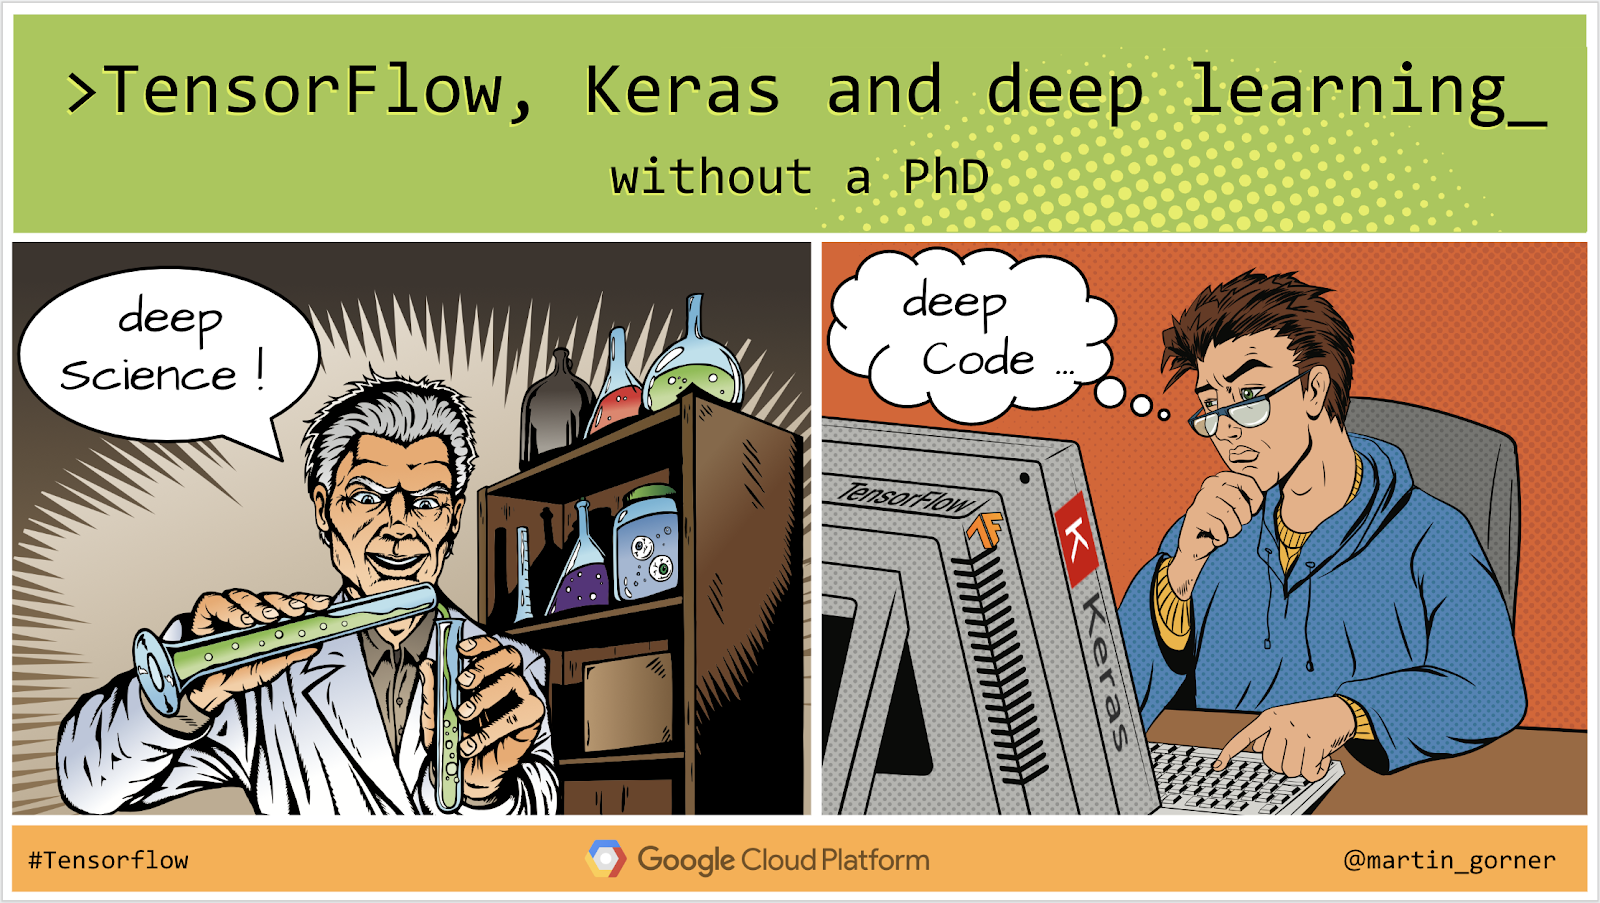 TensorFlow, Keras and deep learning, without a PhD